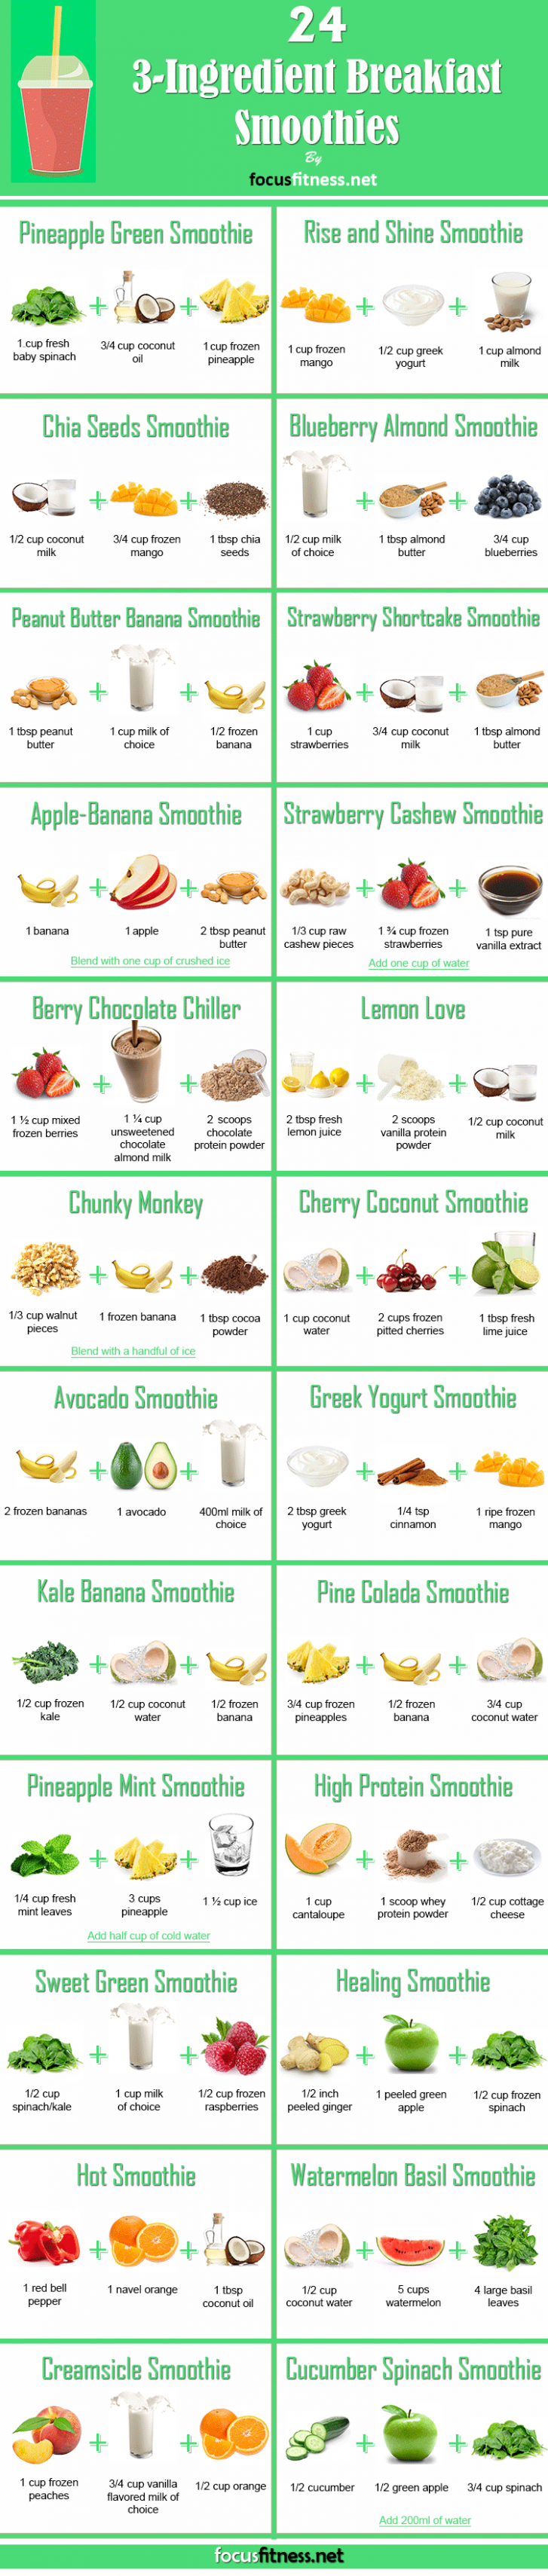 9+ Weight Loss Smoothies To Make You Slim Down In A Flash - The ..